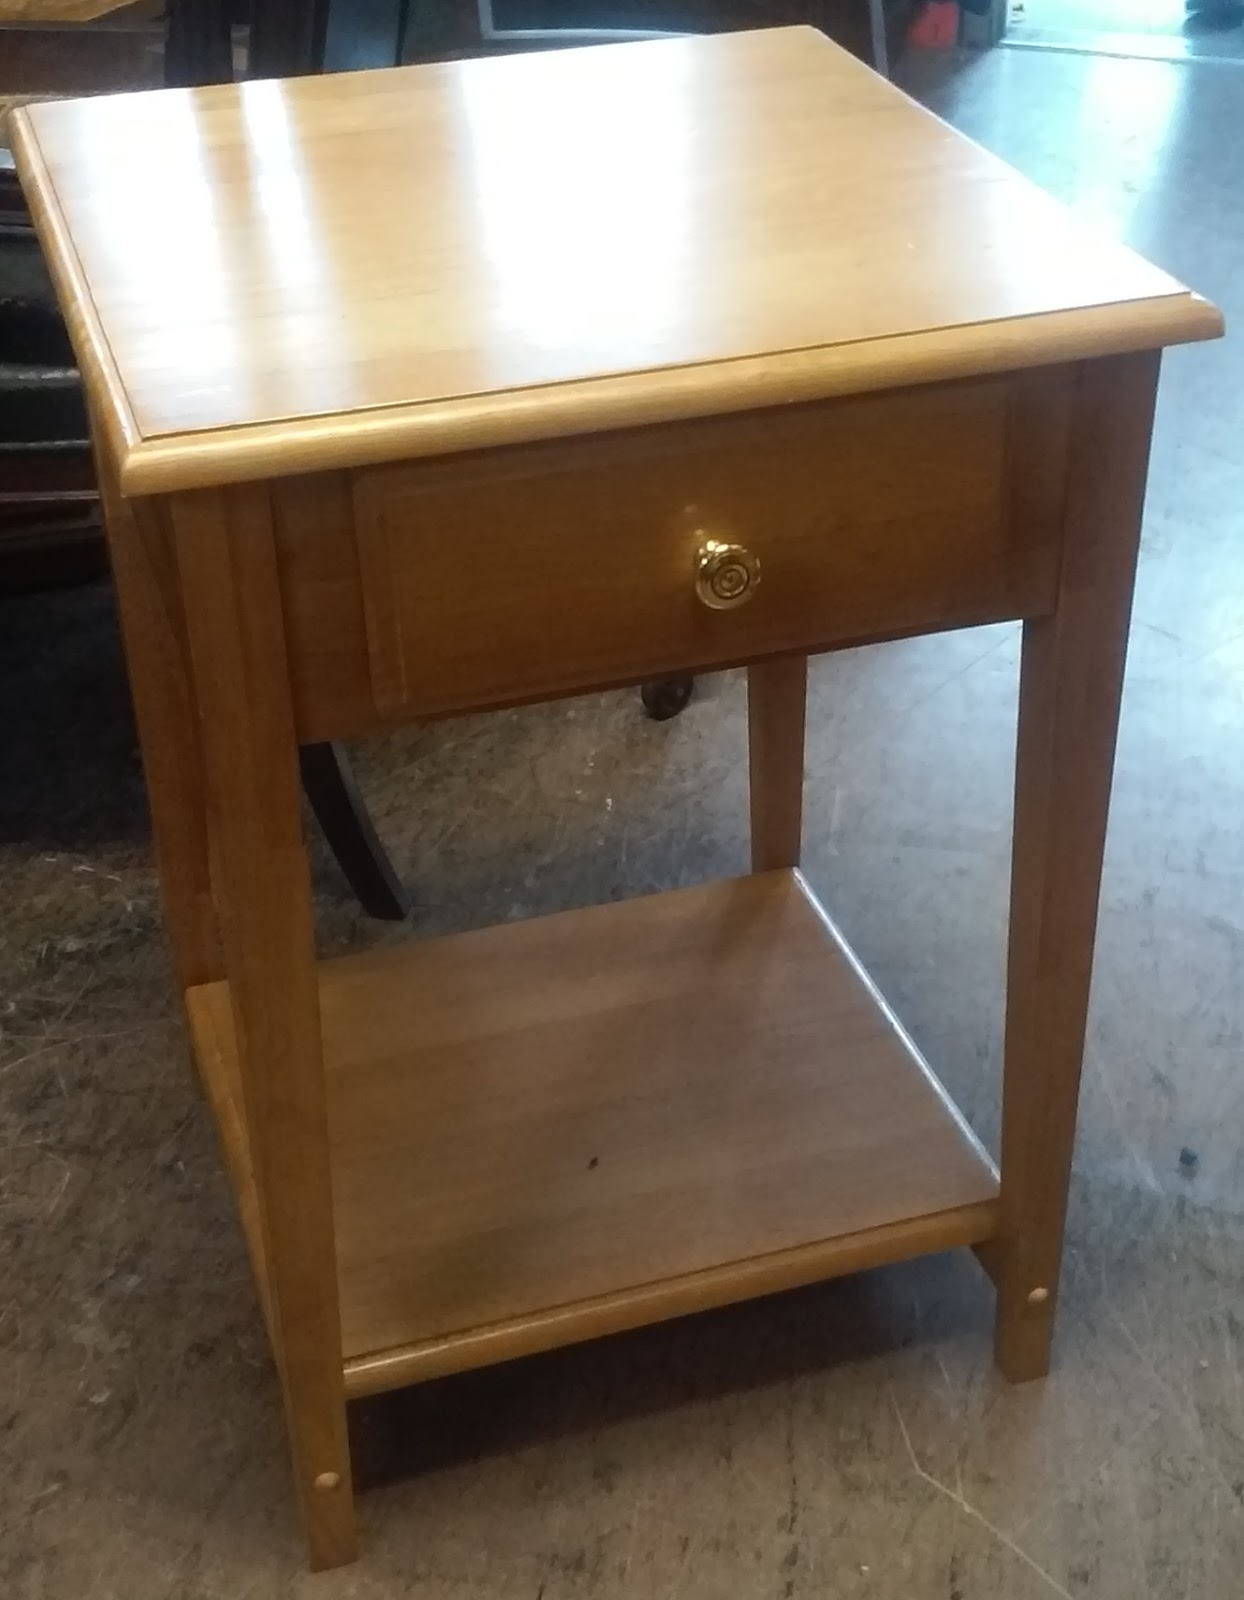 Uhuru furniture collectibles sold reduced 27 tall for Reduced furniture